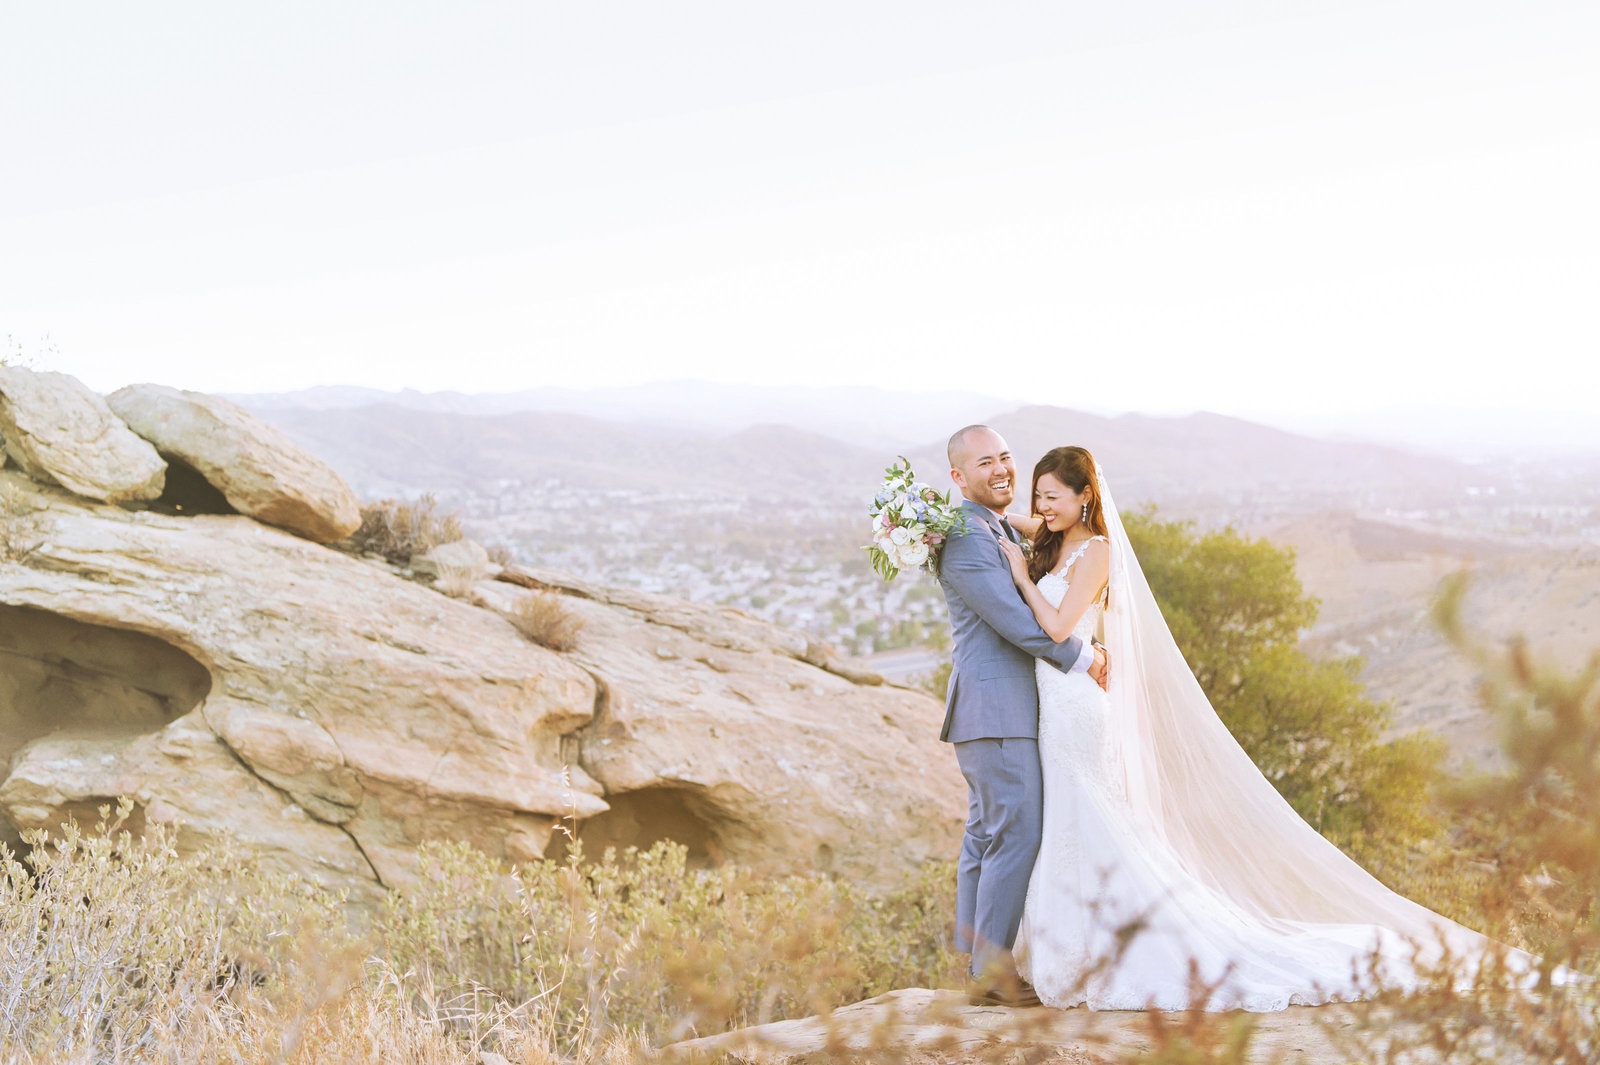 Hummingbird-Nest-Ranch-Malibu-Wedding-Photographer-061